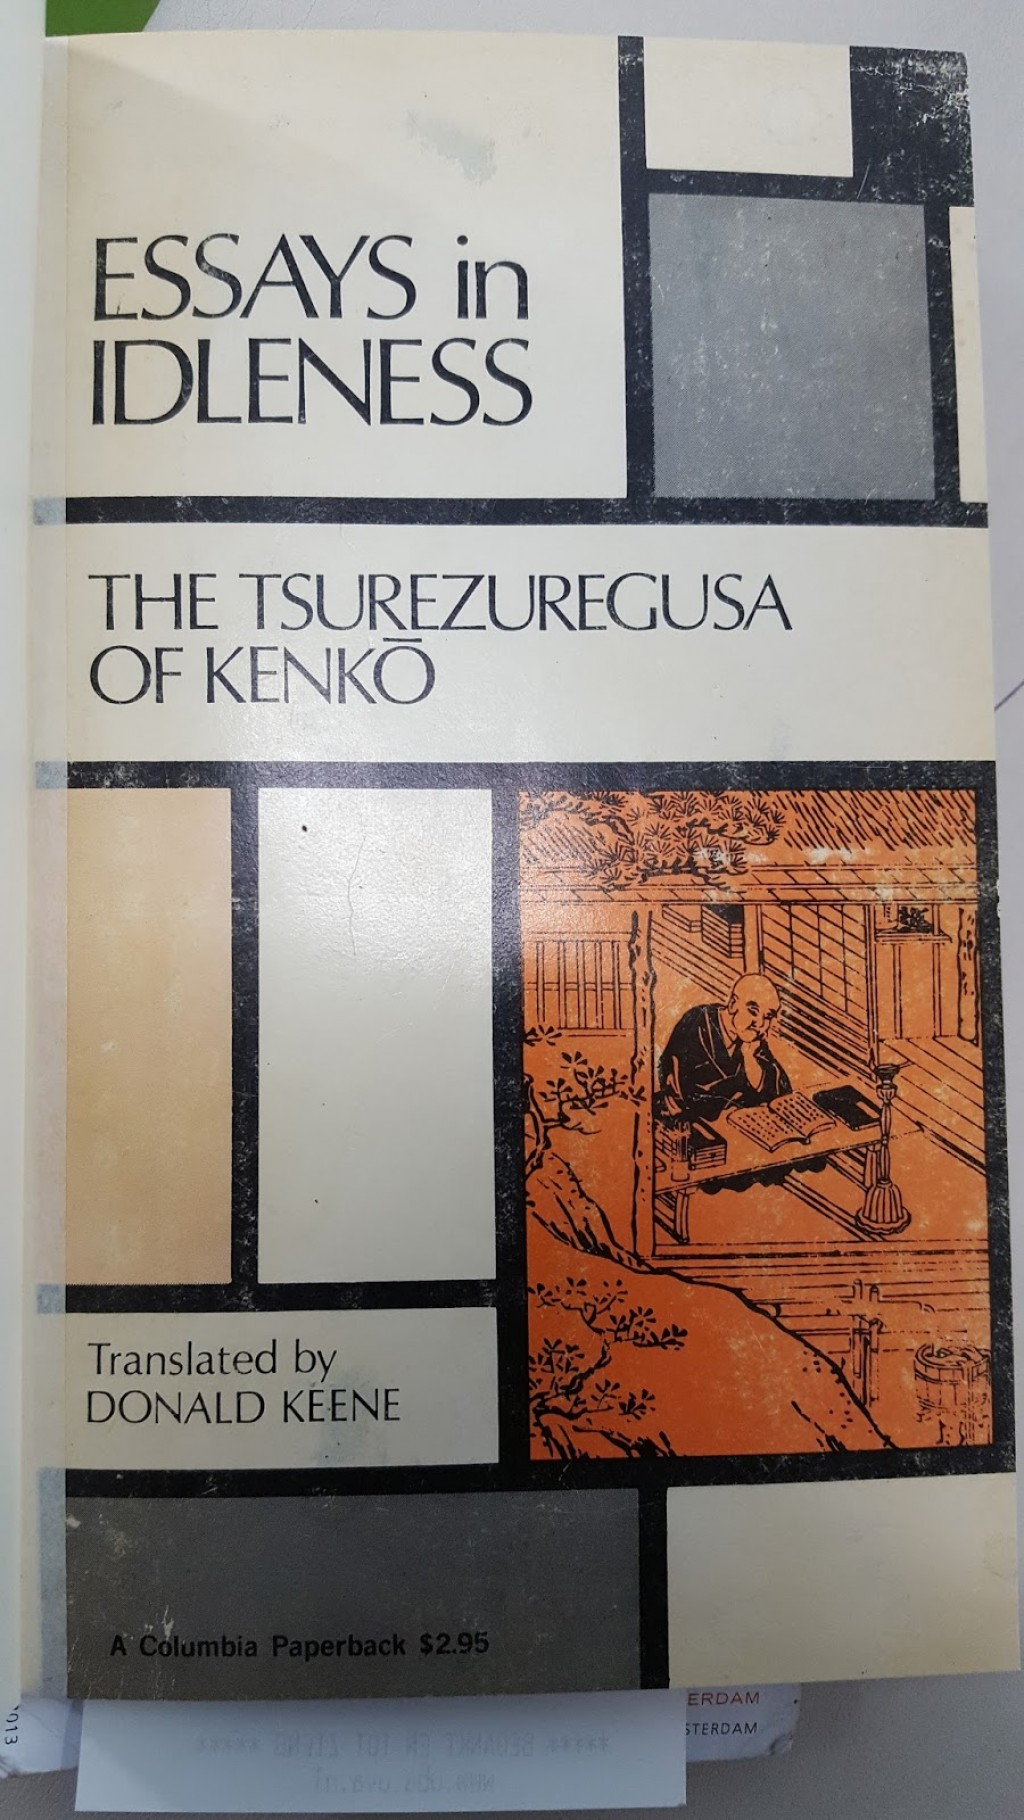 007 Essays In Idleness 20180502 084153 Essay Magnificent Summary The Tsurezuregusa Of Kenkō Large